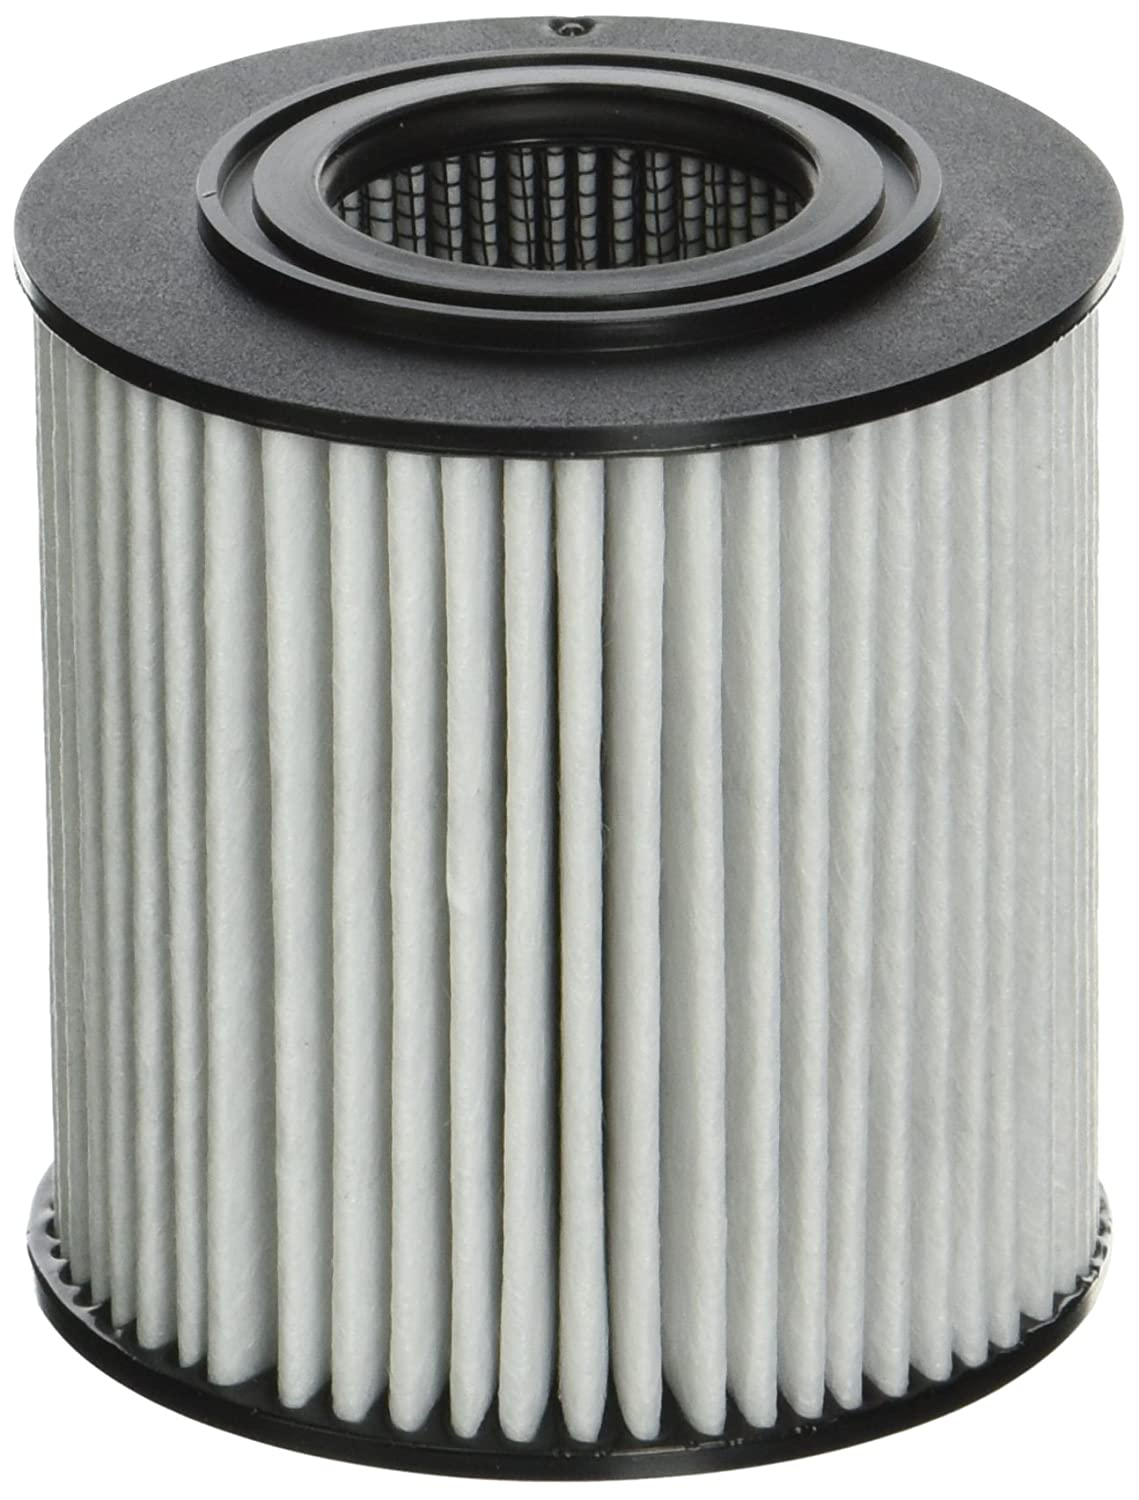 WIX Filters - 57203XP Xp Cartridge Lube Metal Filter, Pack of 1